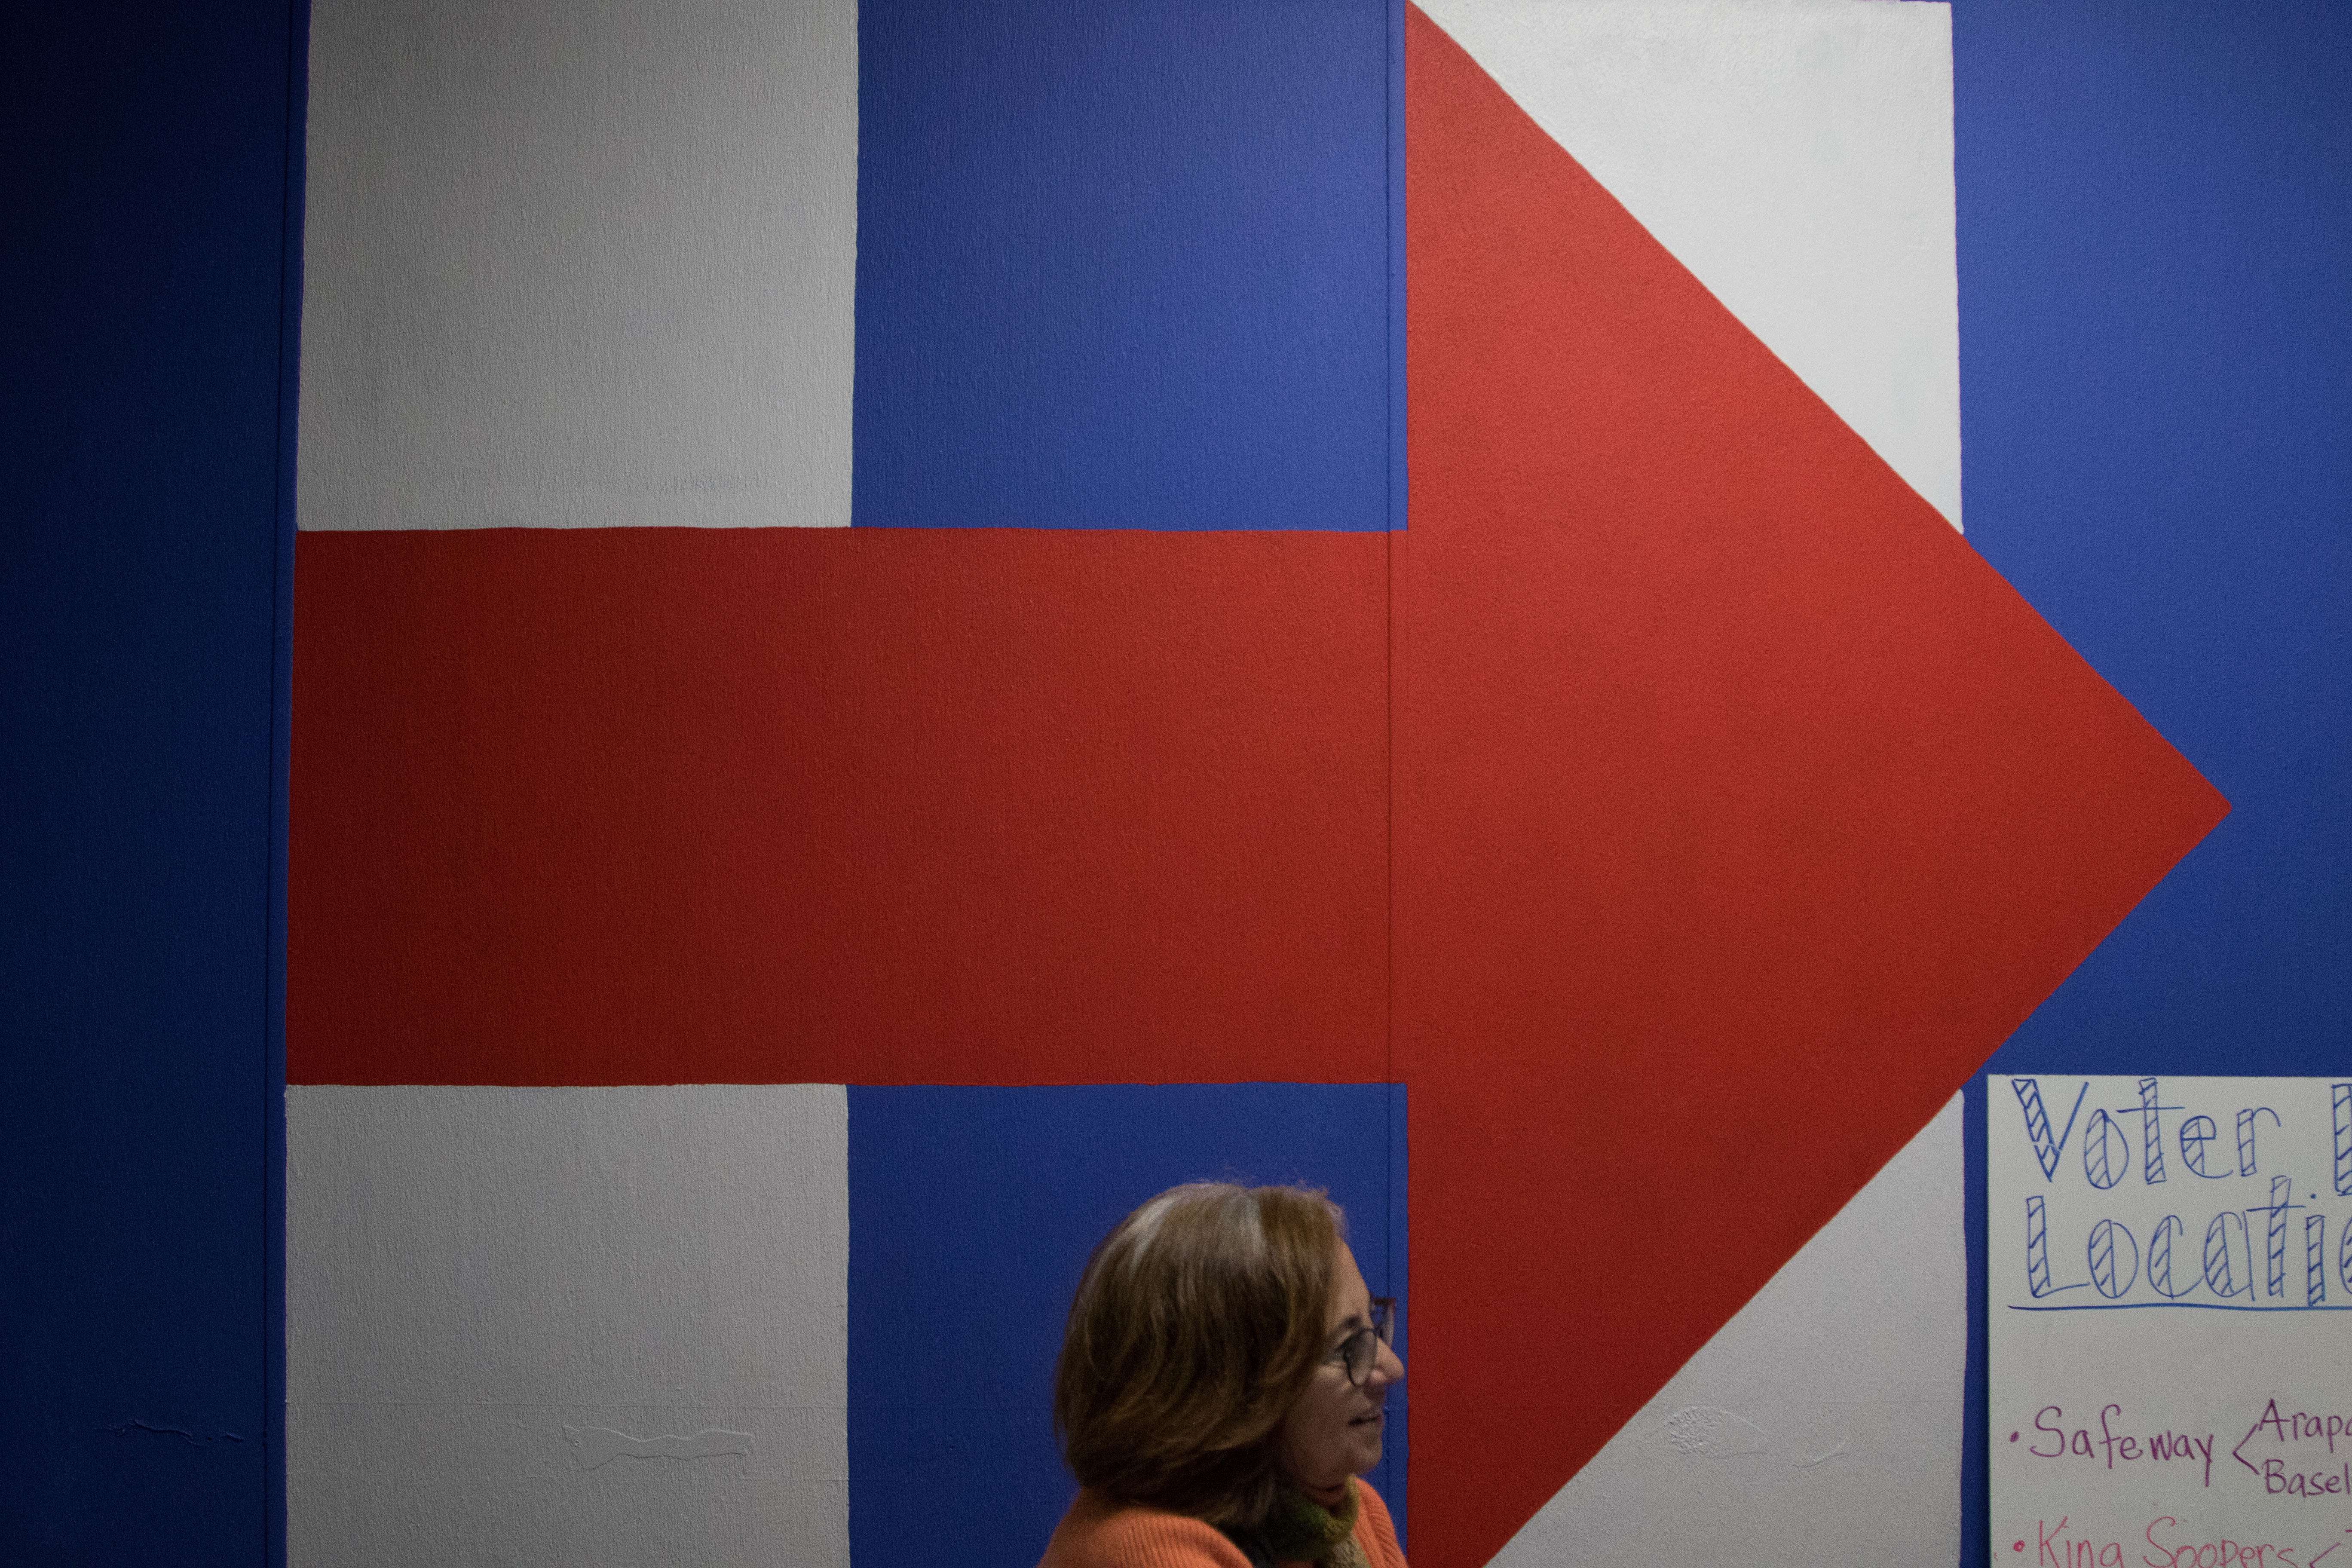 During the Vice Presidential debate a woman sits at the front desk of the Hillary campaign's office. She greets new comers to the office and helps people, esspecially students, register to vote and volunteer. (Jackson Barnett/CU Independent)